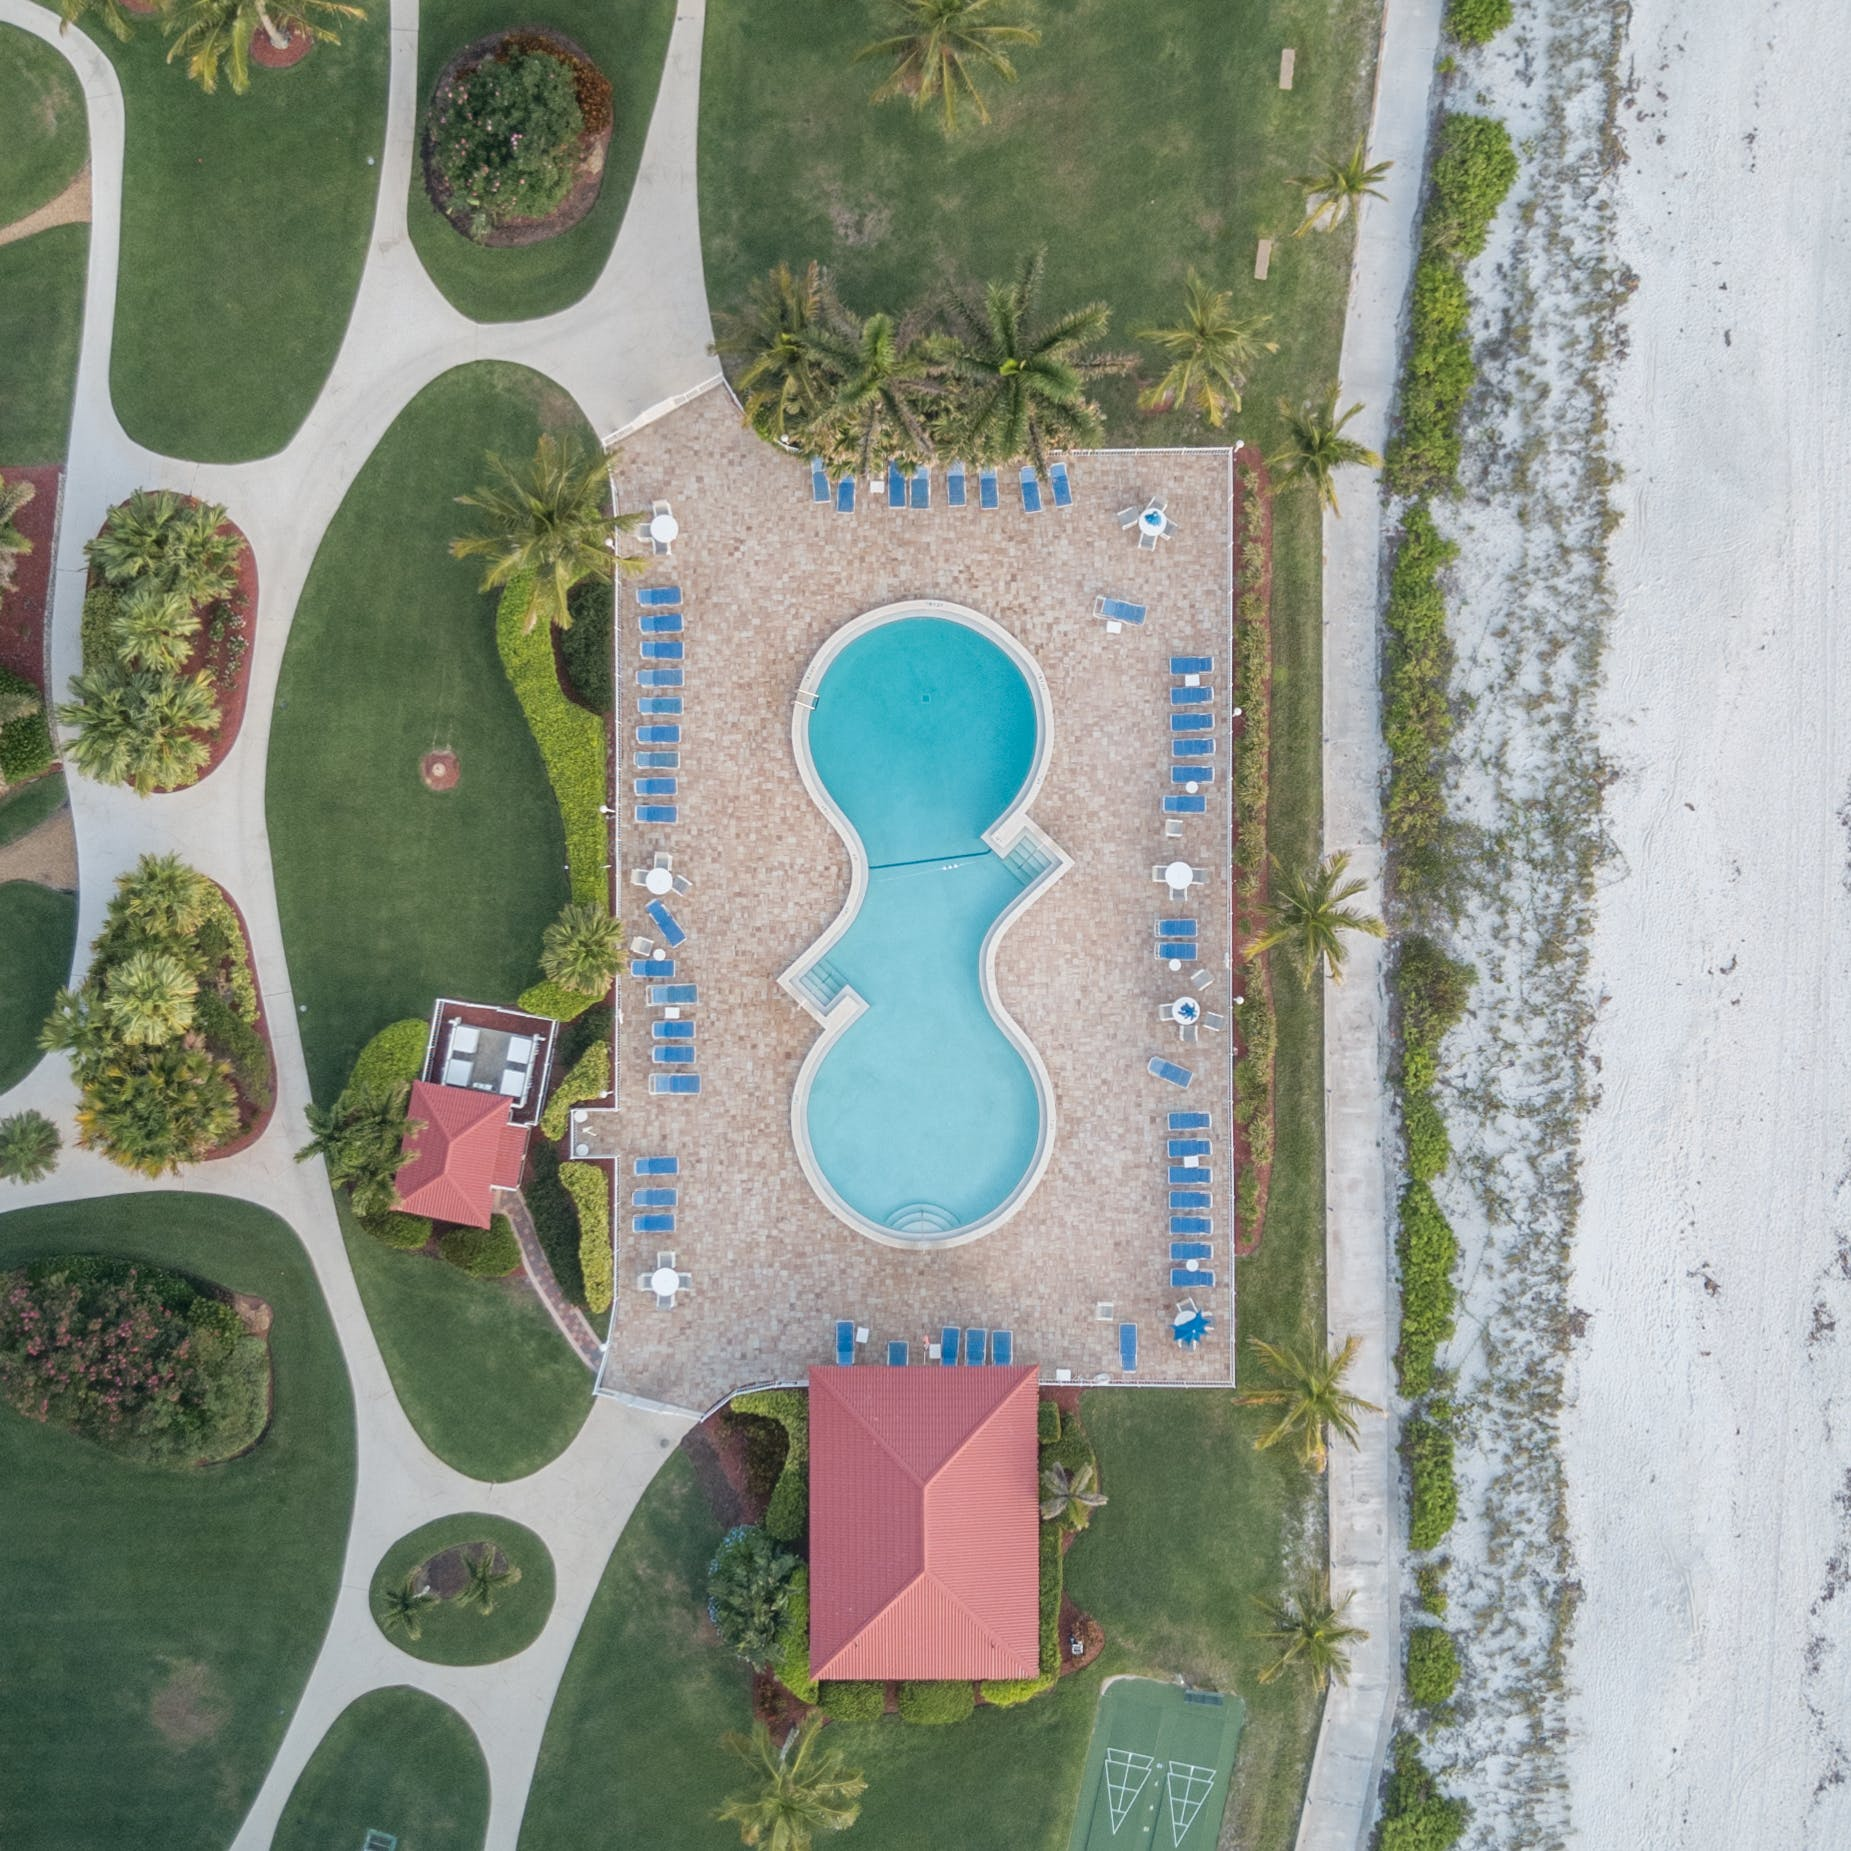 High Angle Photo of Outdoor Swimming Pool